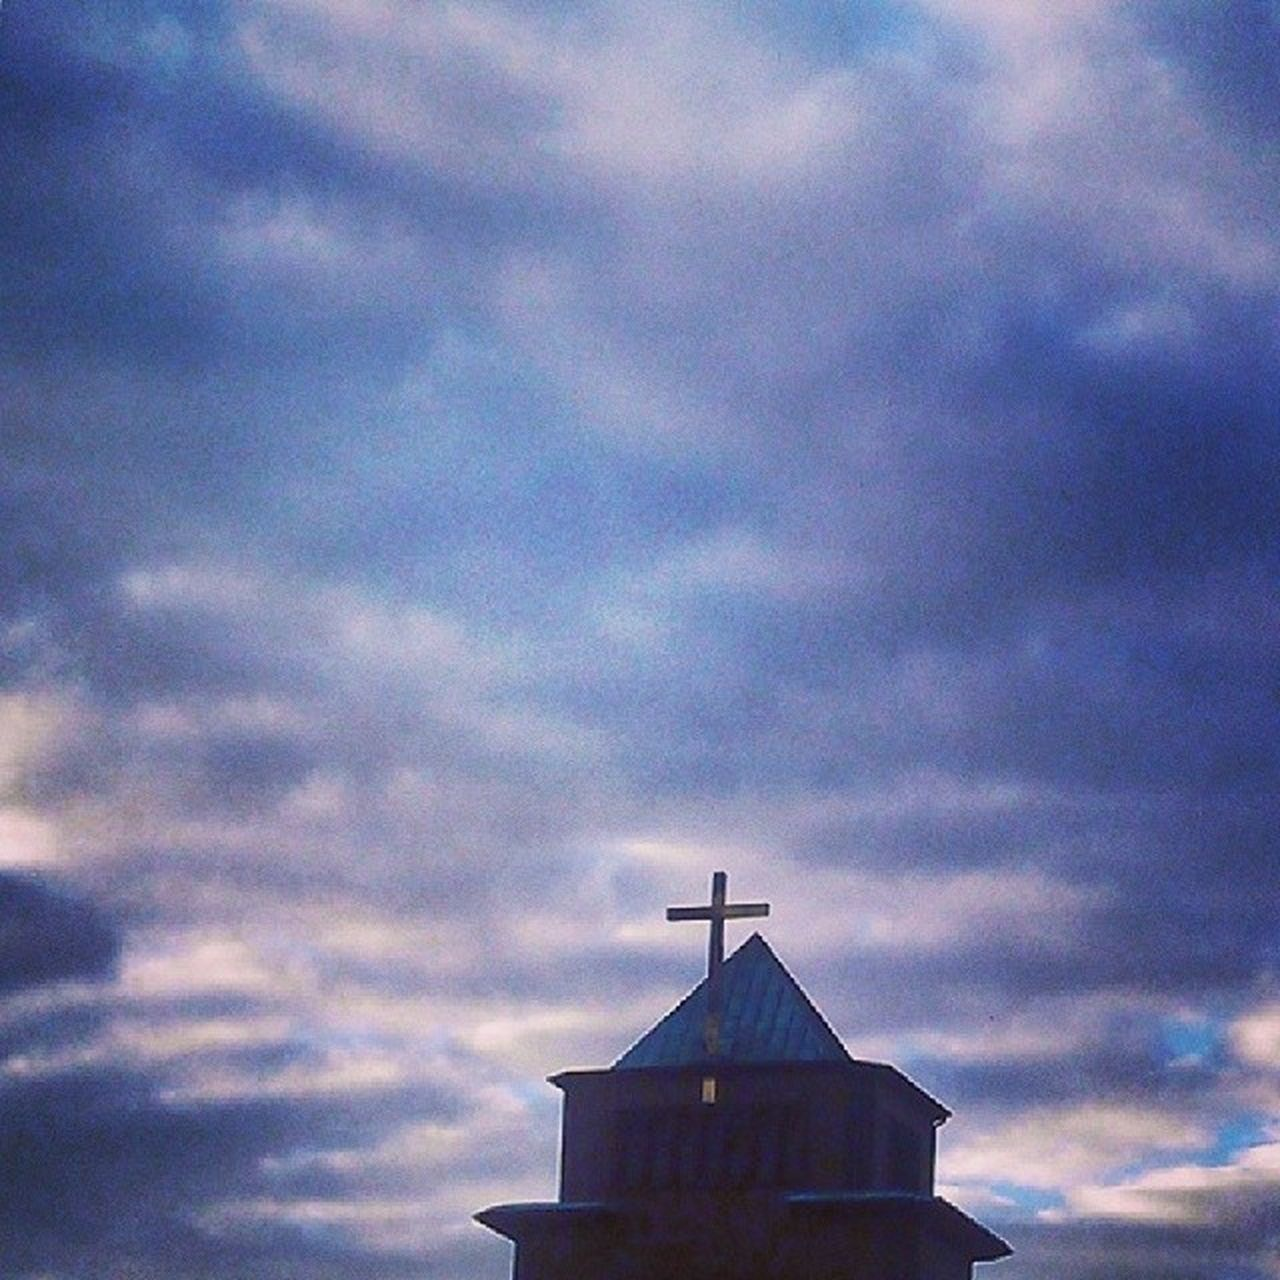 cloud - sky, architecture, built structure, sky, building exterior, religion, no people, low angle view, spirituality, outdoors, place of worship, weather vane, sunset, day